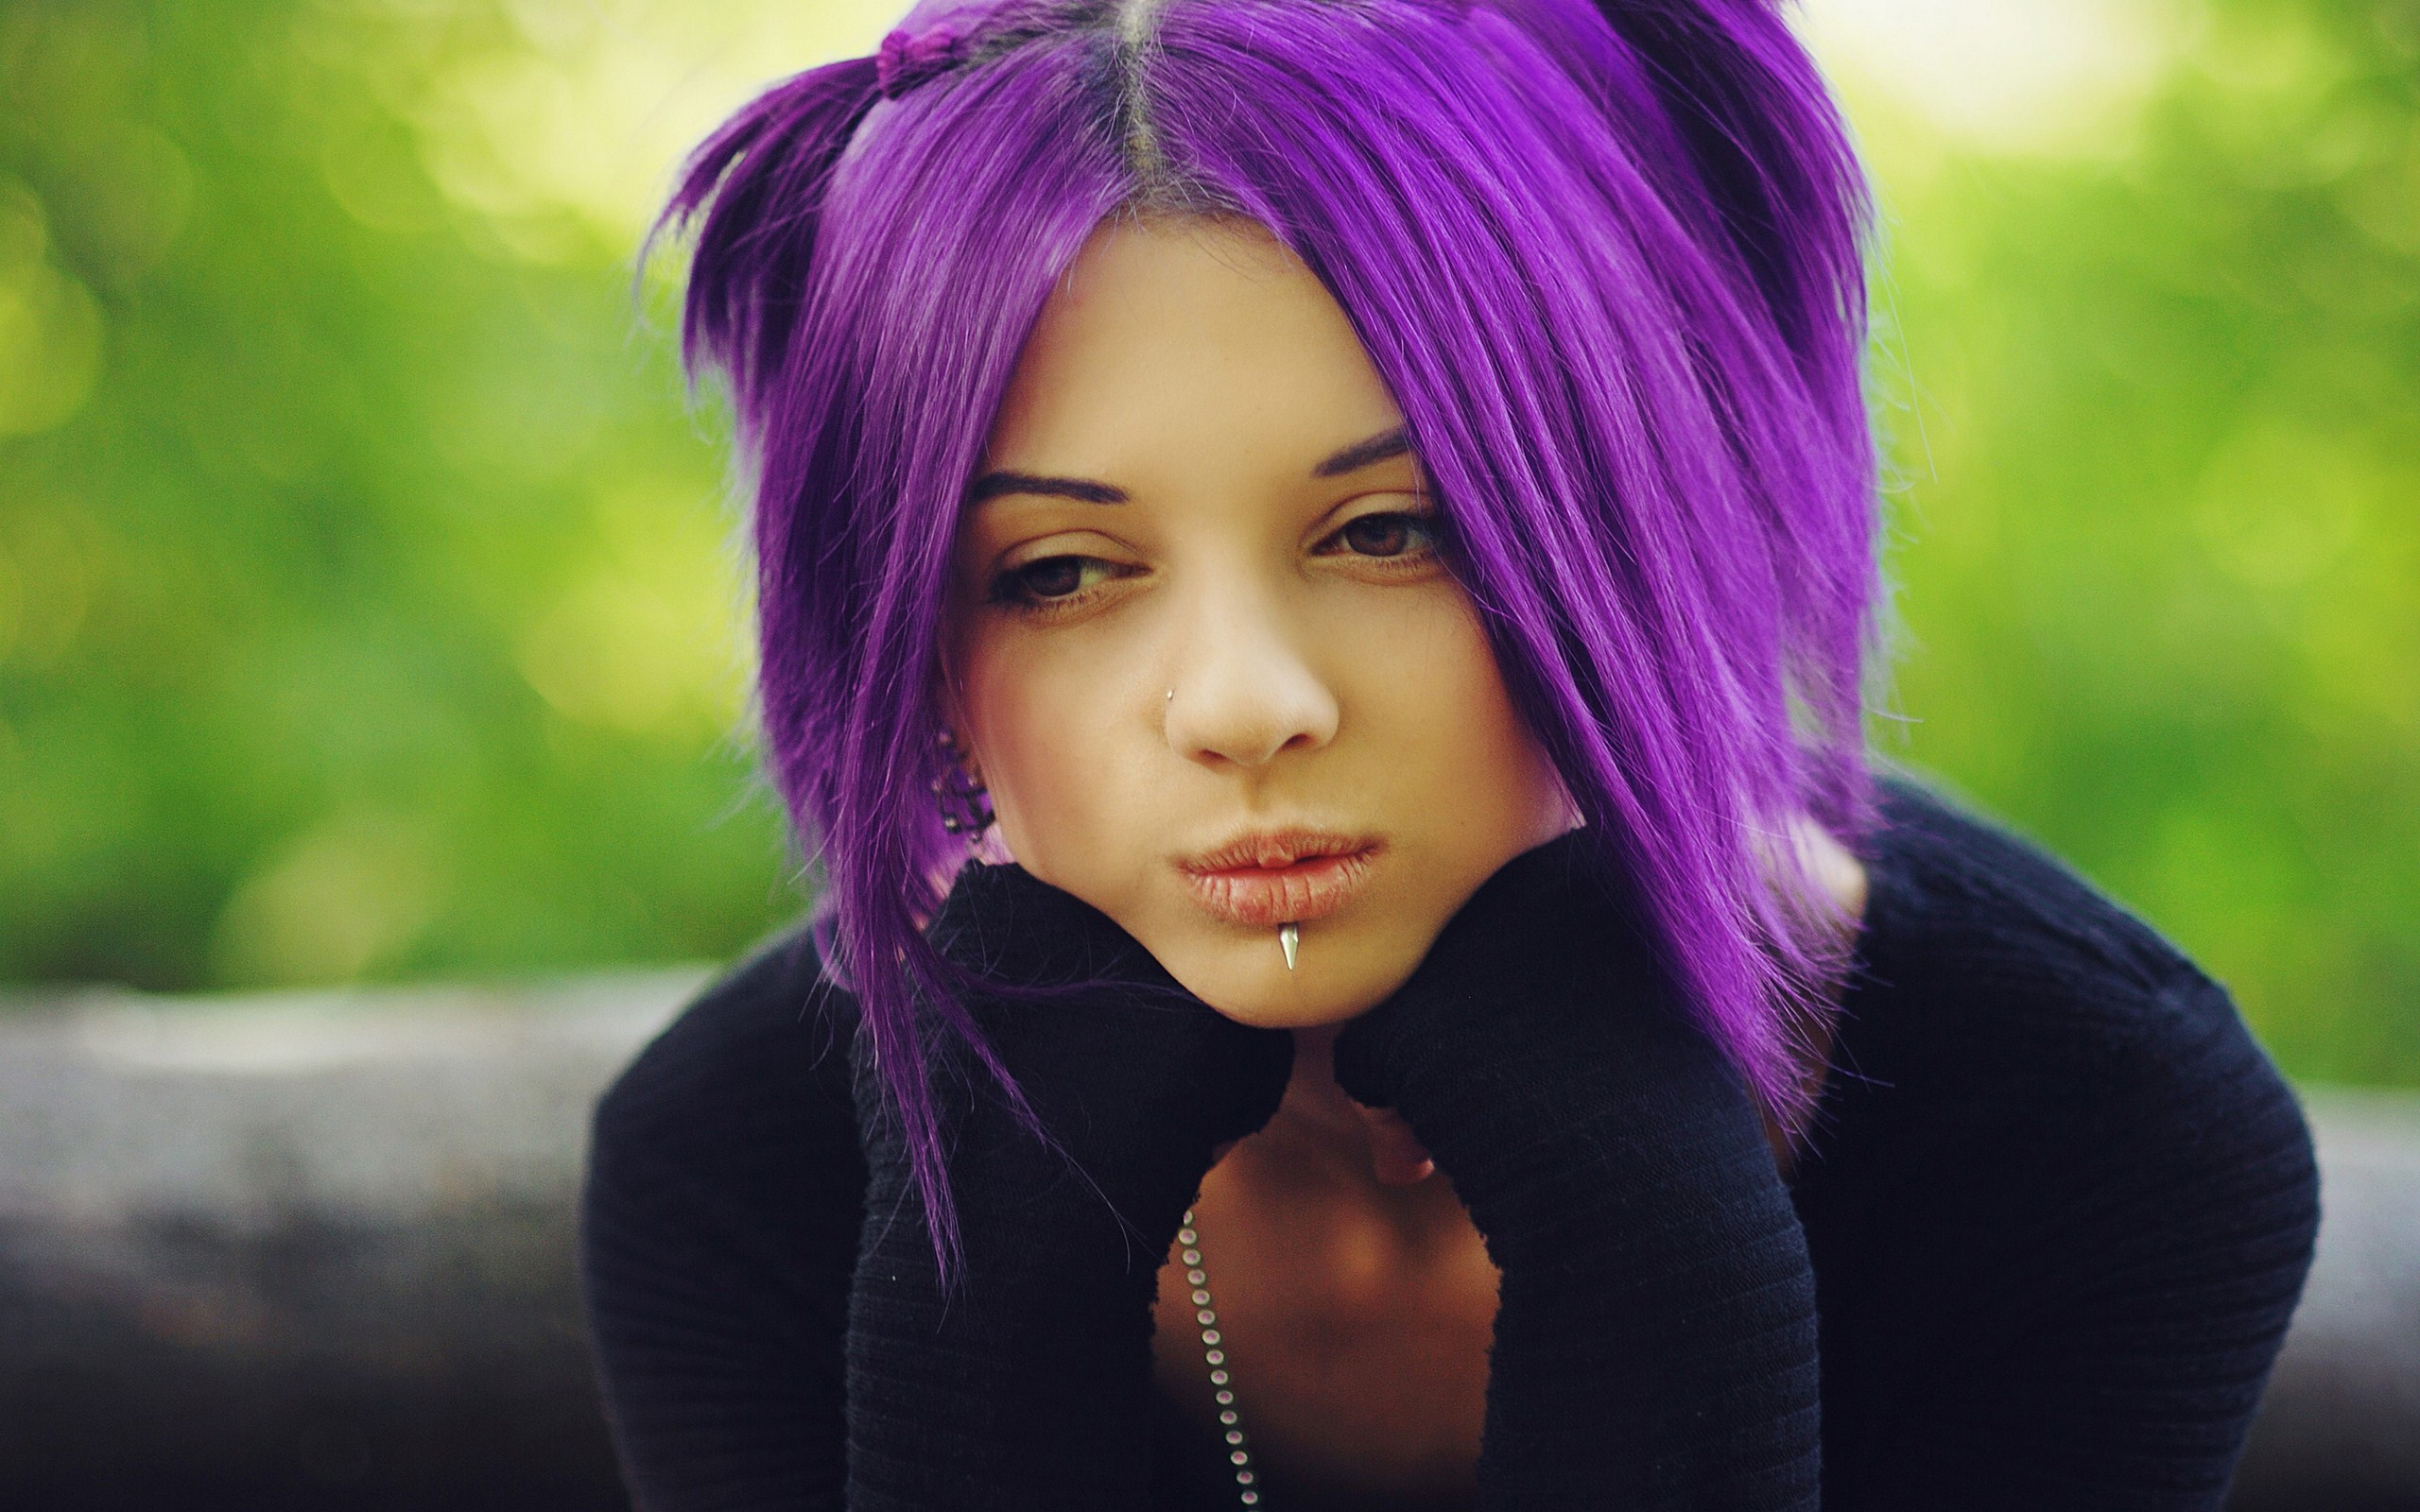 Purple Hair Wallpaper 35230 1920x1080 px